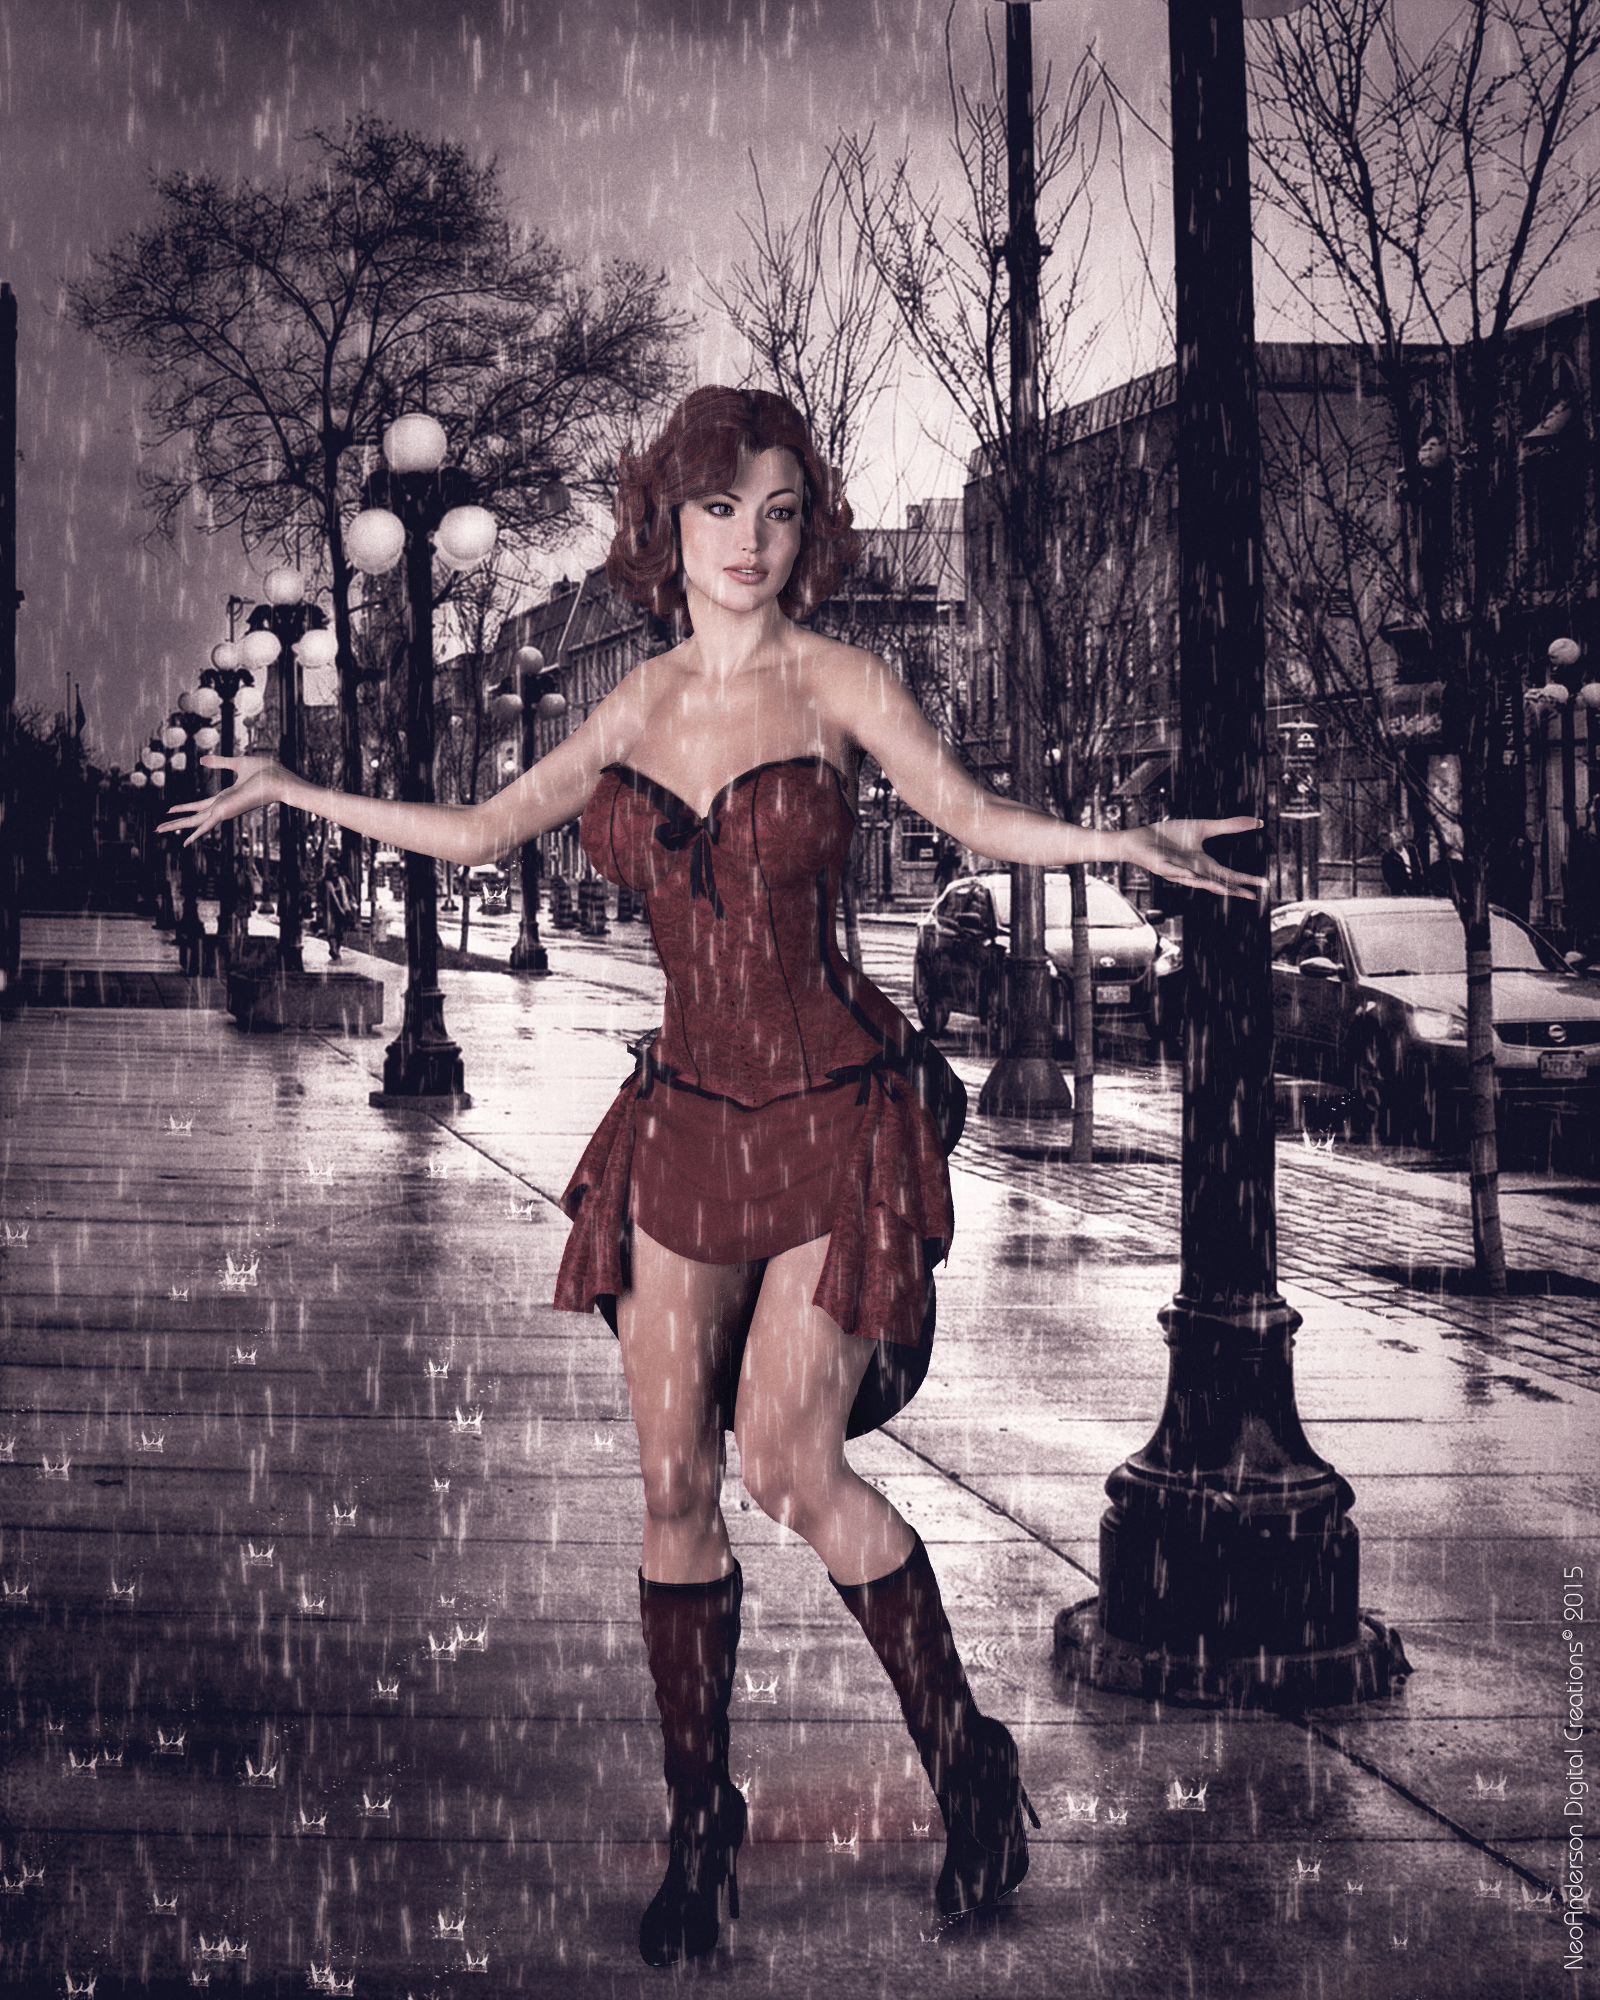 Dancing In The Rain (Updated Desaturated) By Neoanderson79